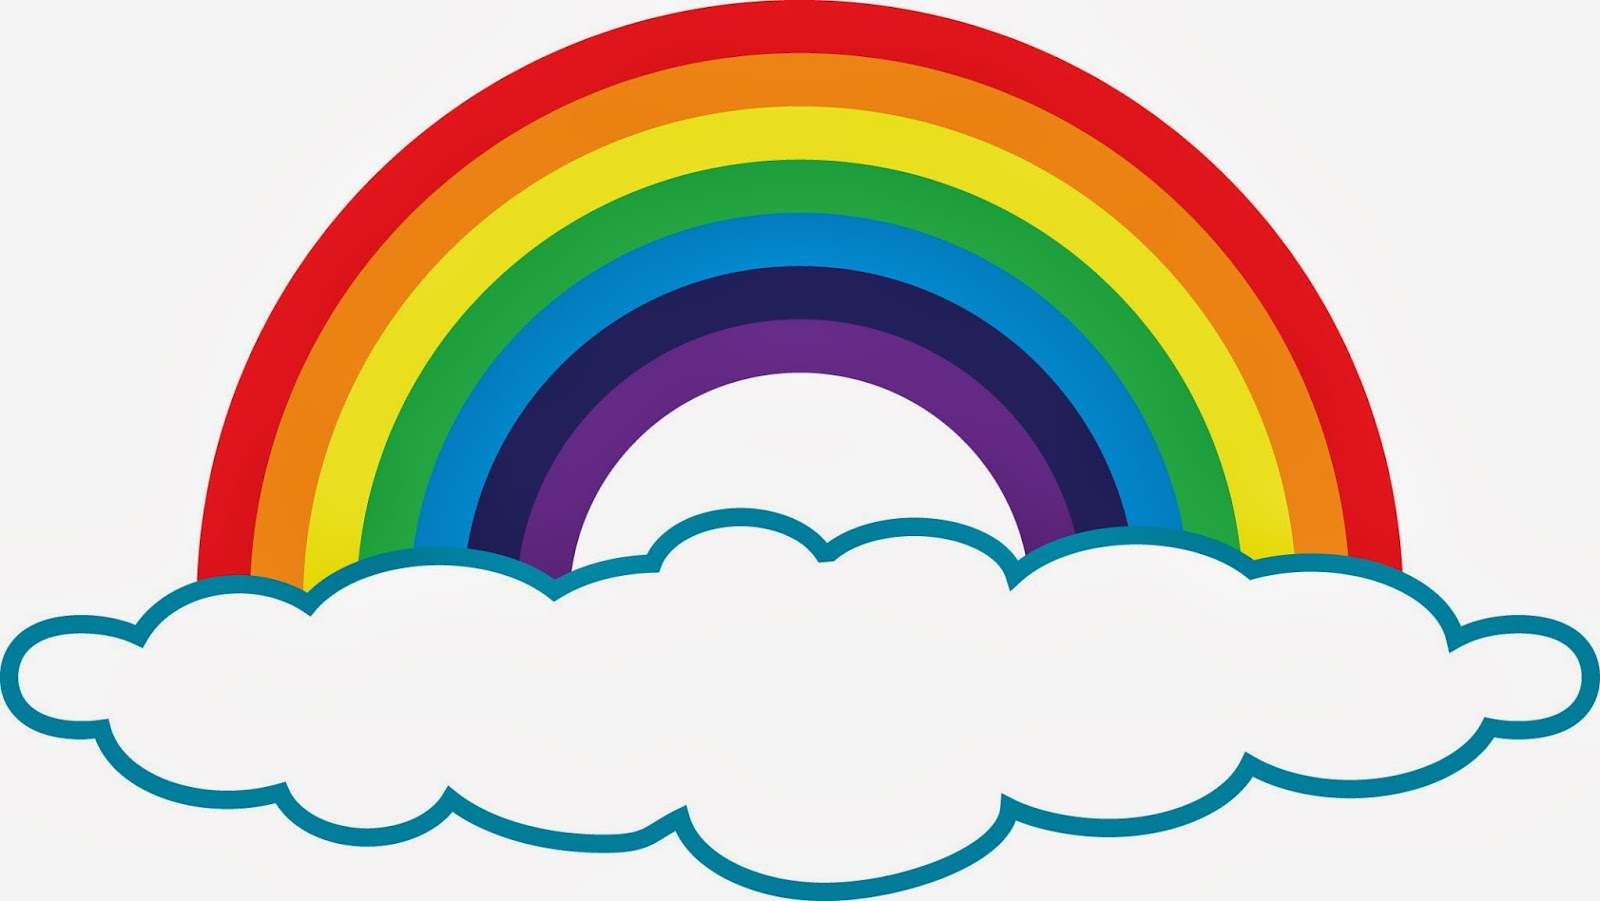 Rainbow Clipart Images